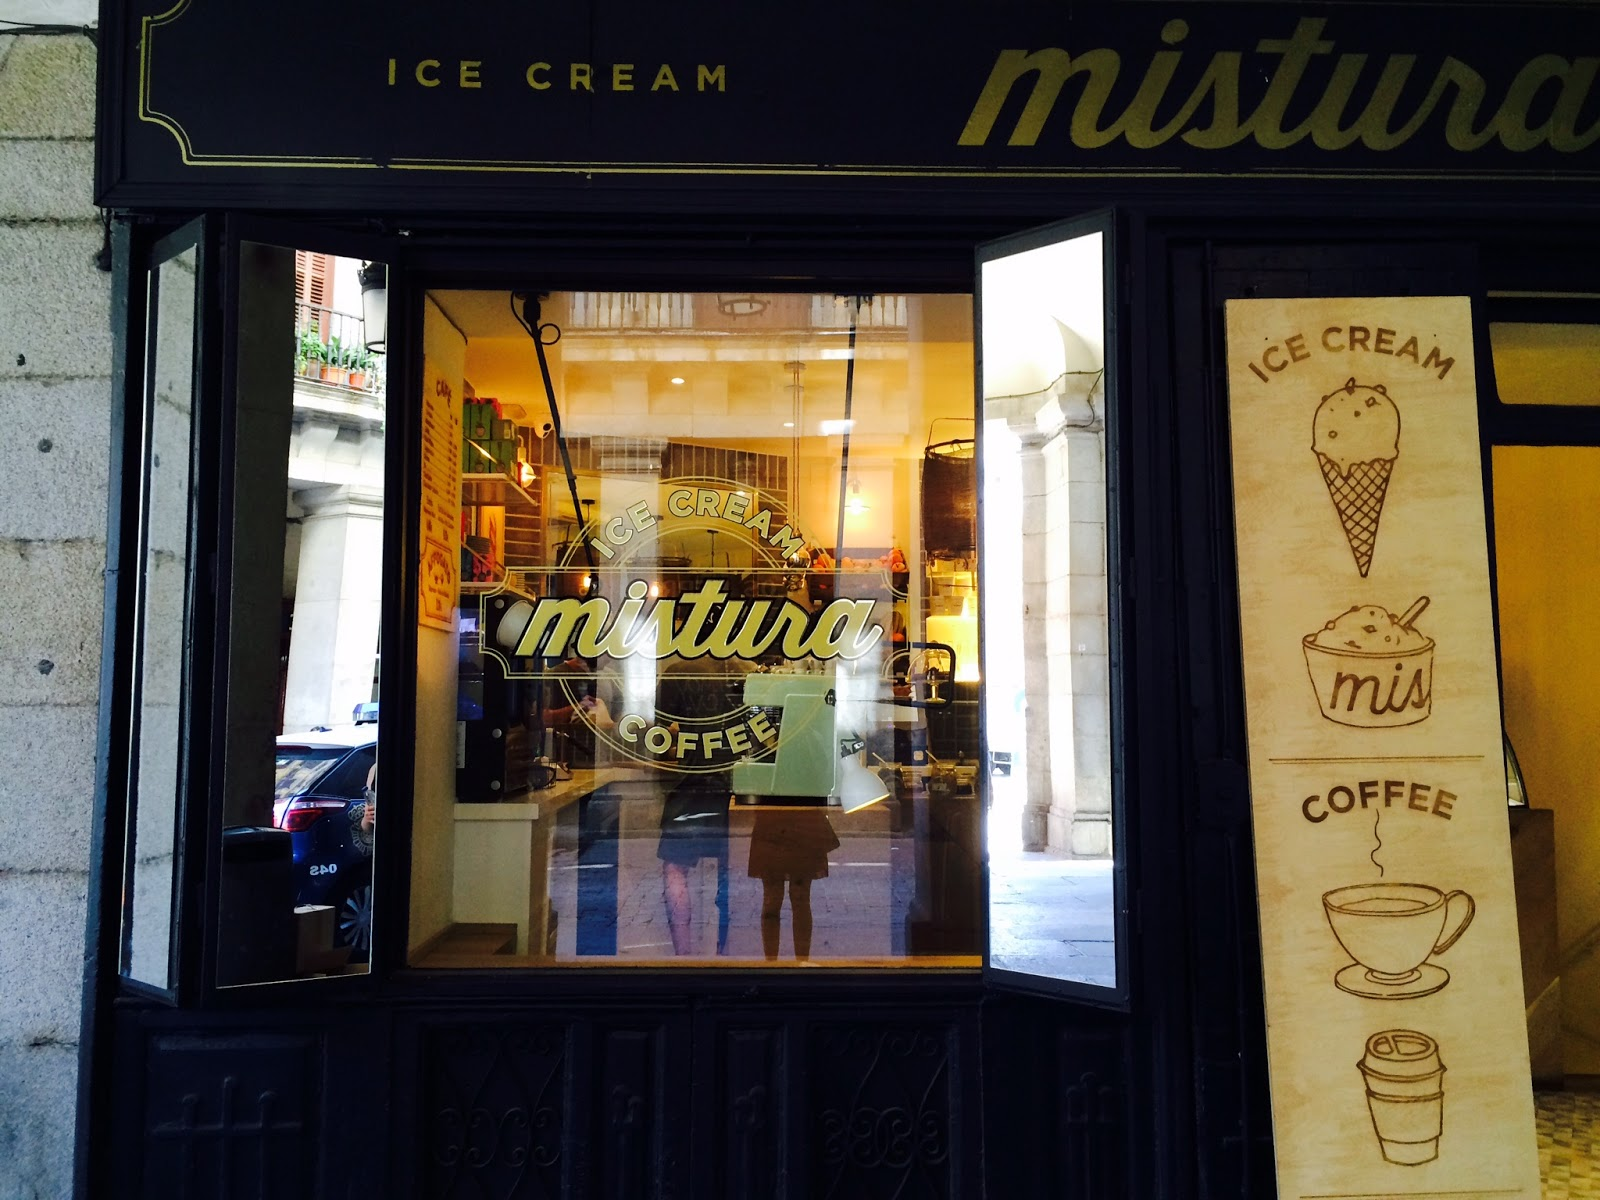 Mistura Ice Cream Madrid - Hostpot